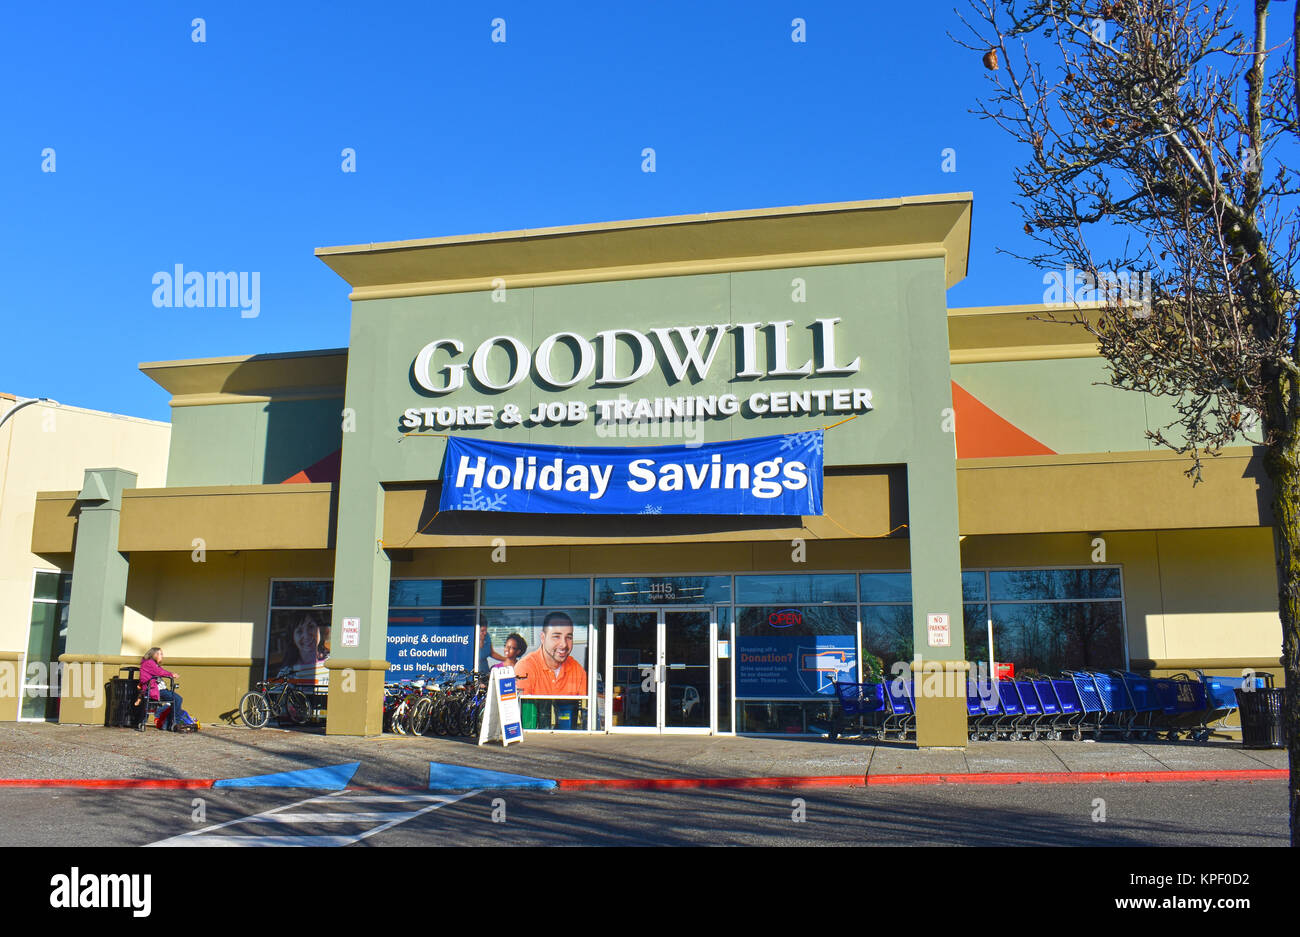 Used Goods Outside Hand Shop Stock Photos Used Goods Outside Hand Shop Stock Images Alamy